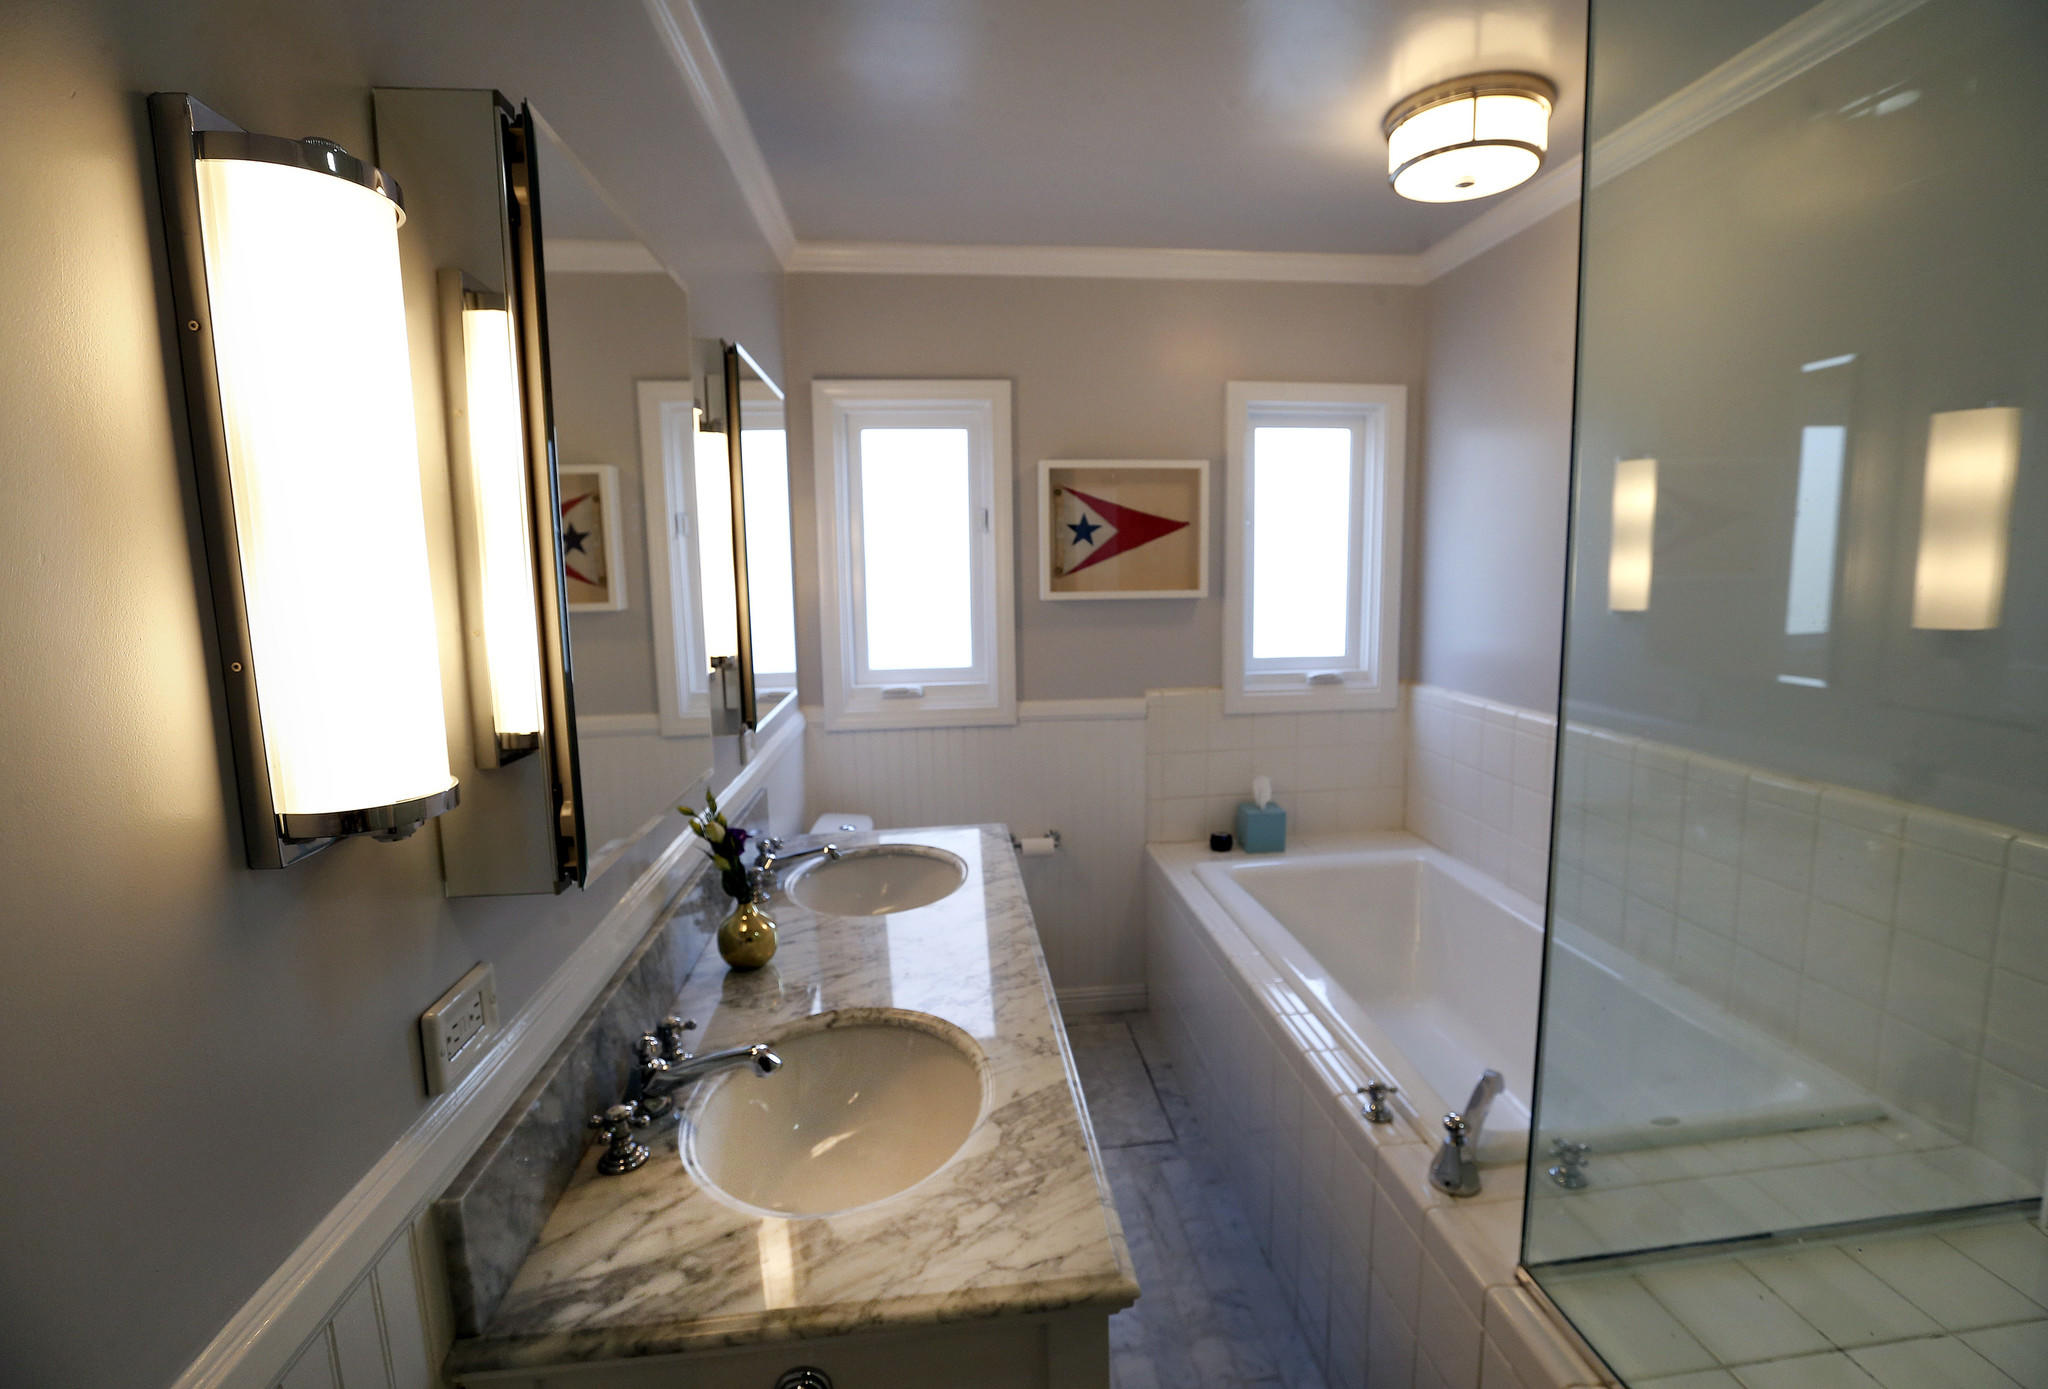 The main bathroom features a new vanity with carrera marble countertop and floor.